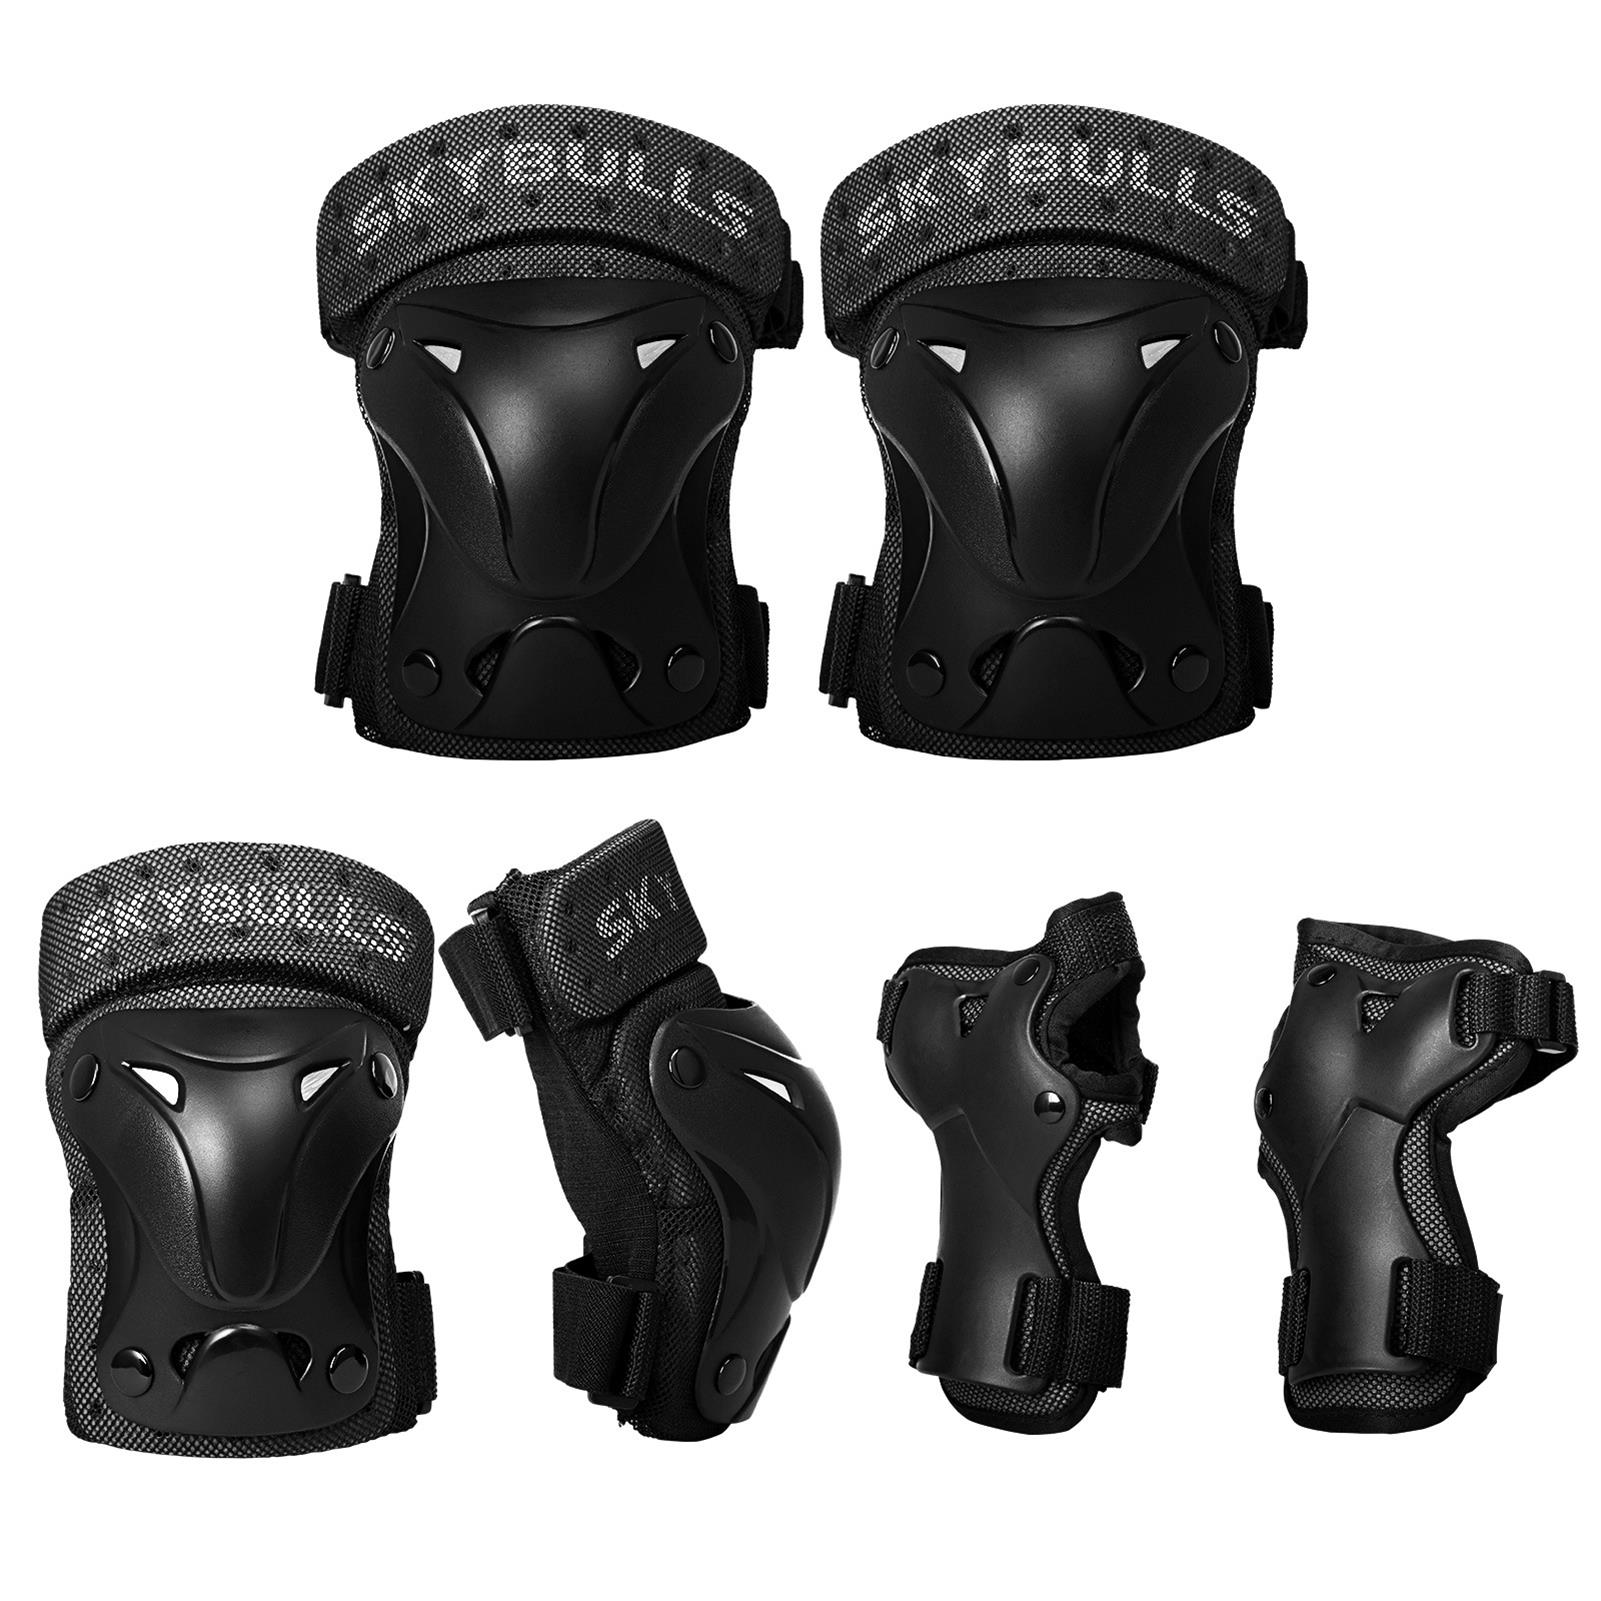 Details about  /Riding Wrist Guards Knee Elbow Pads Safety Protection Sports Protective Gear